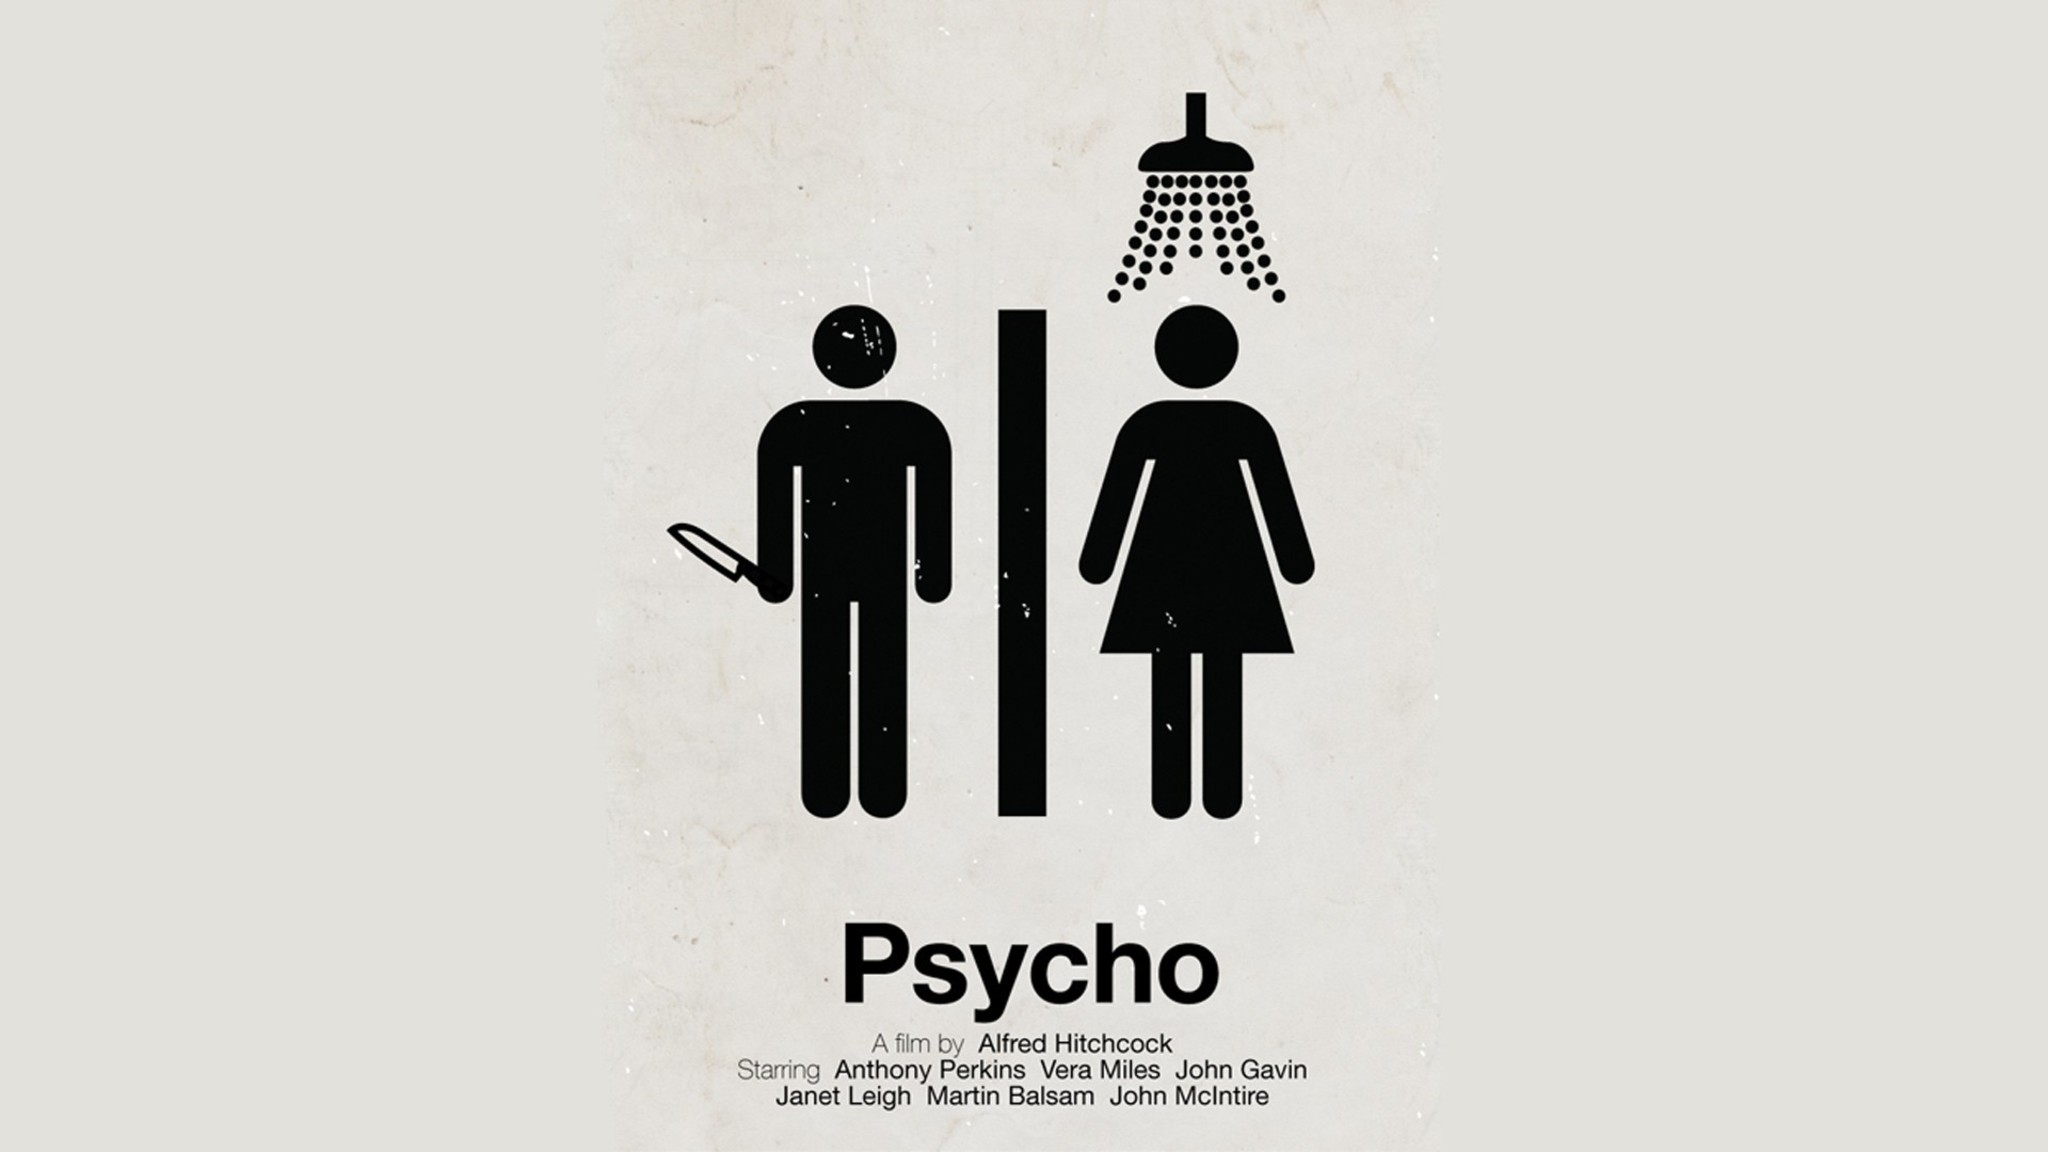 Movies psycho alfred hitchcock wallpaper 2048x1152